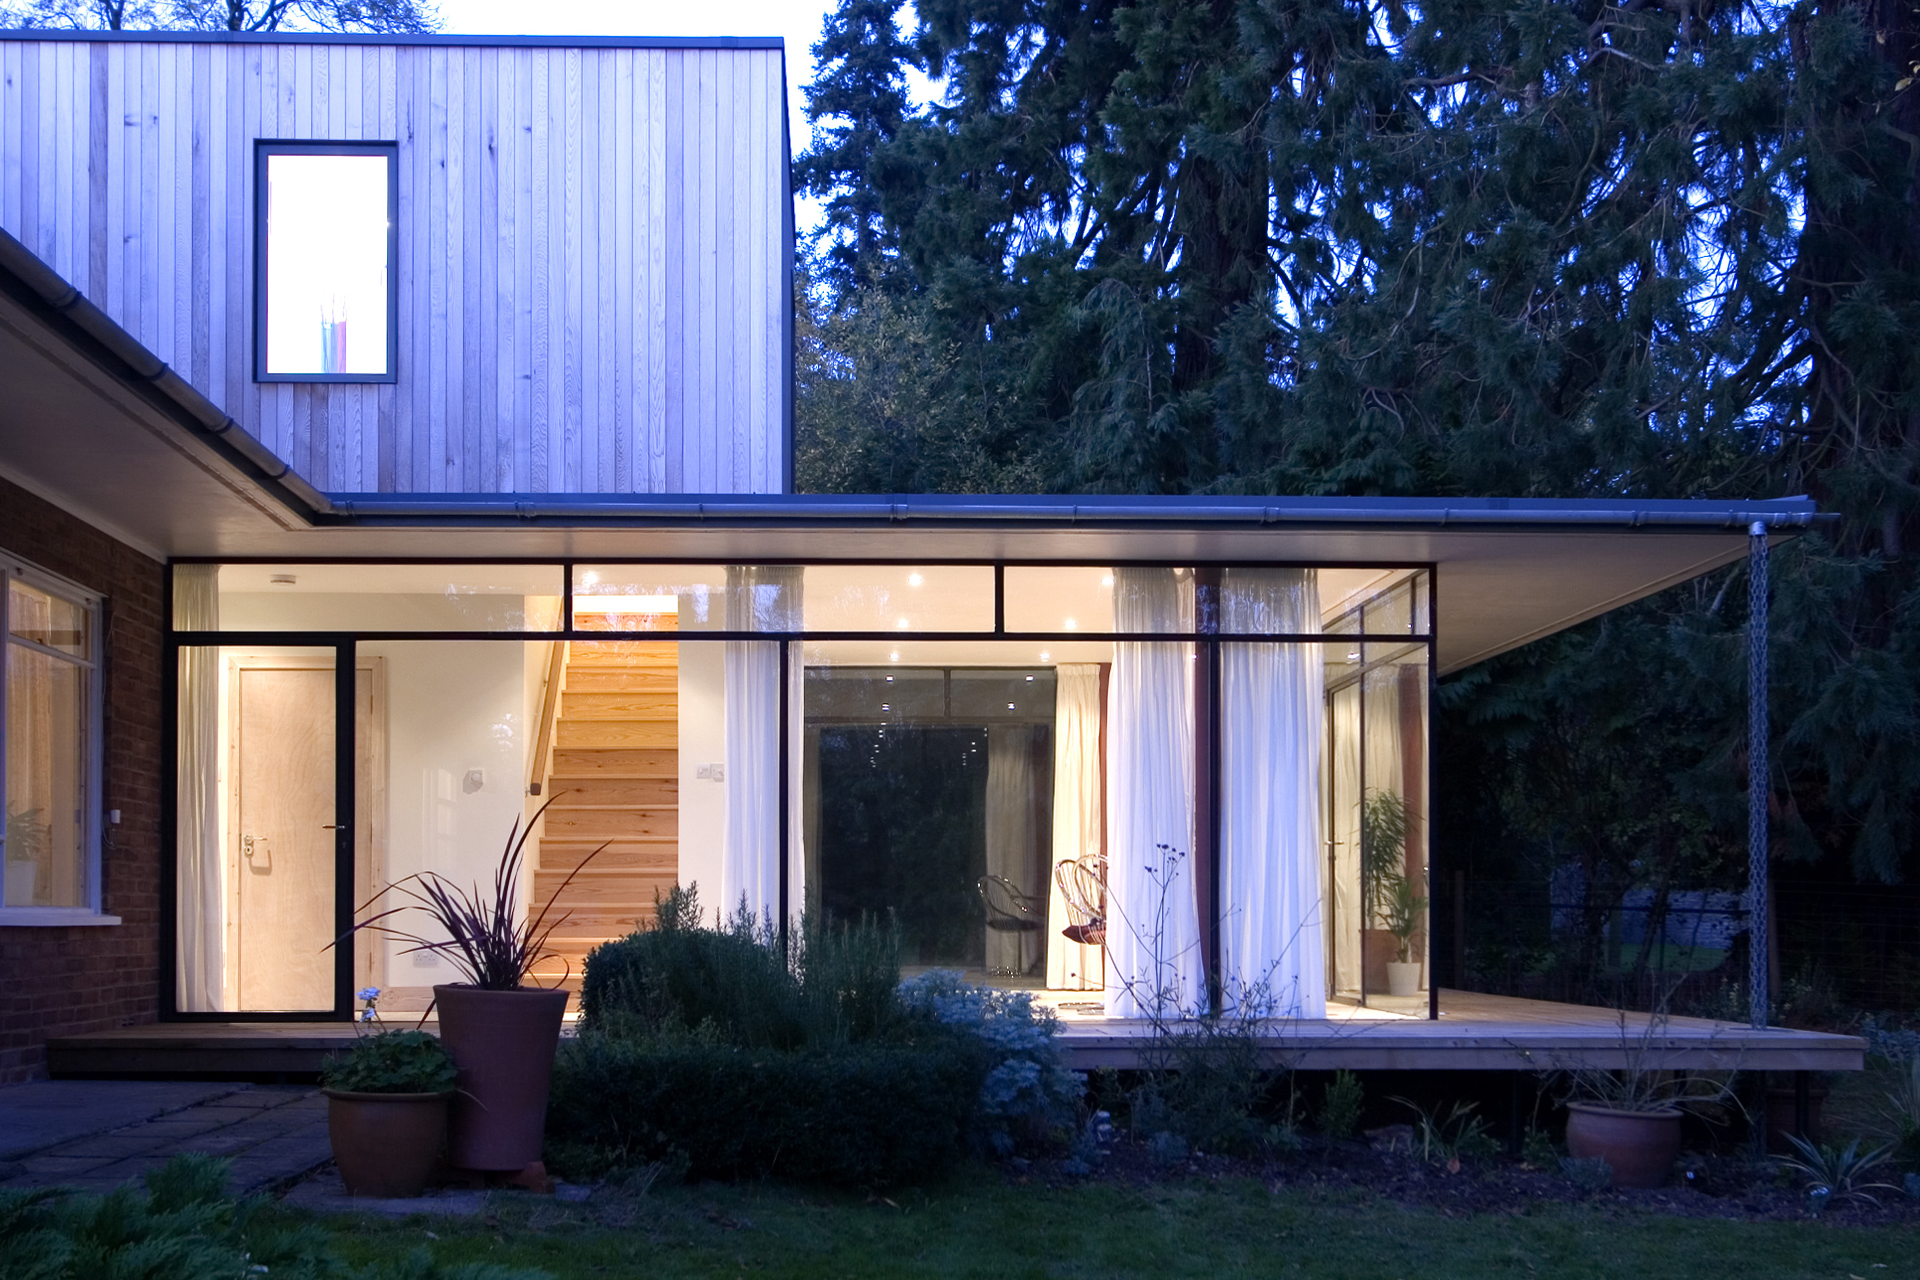 Wood award house, Herefordshire